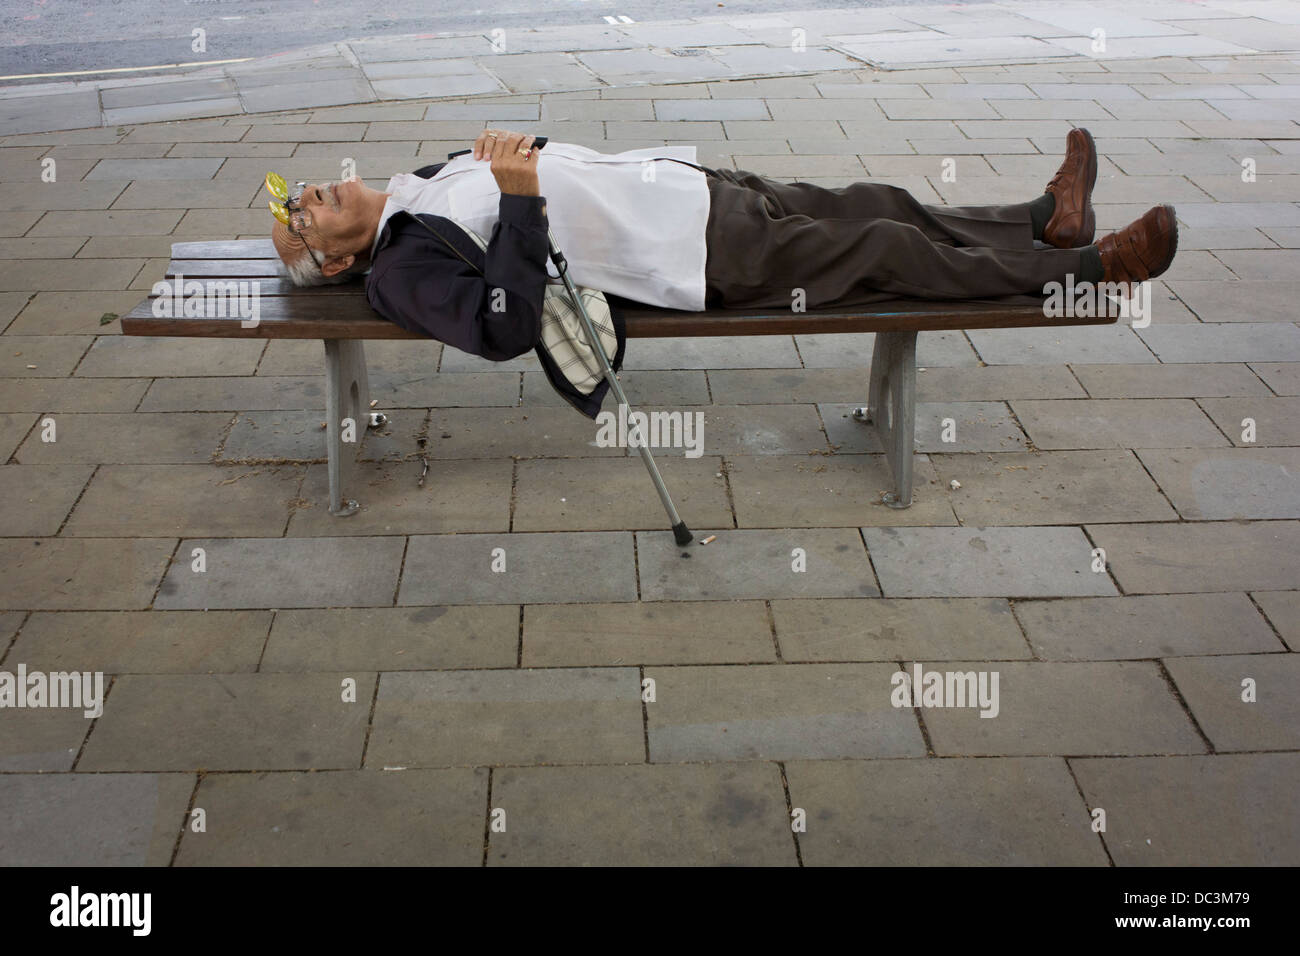 Guarding his walking stick, an elderly gentleman sleeps on a city street bench in central London, his hinged glasses - Stock Image